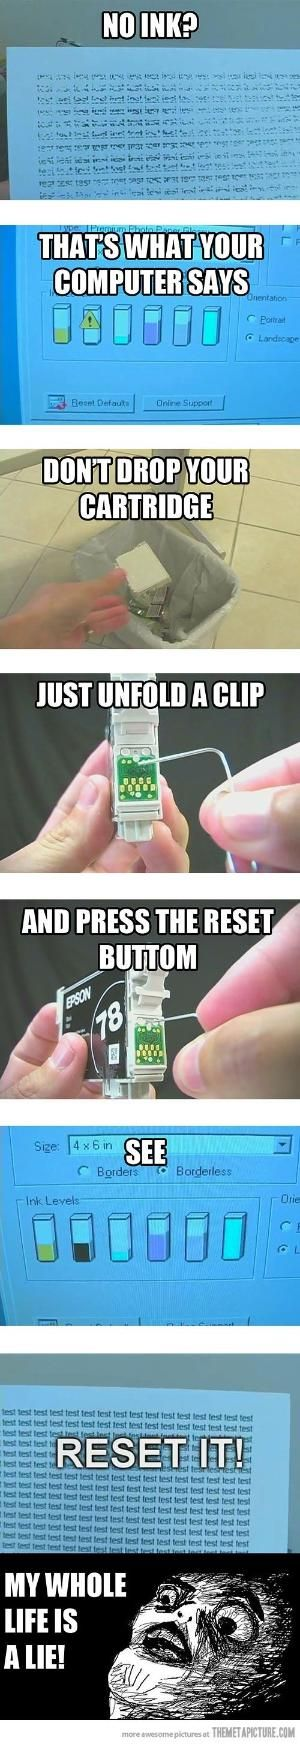 Reset ink cartridges